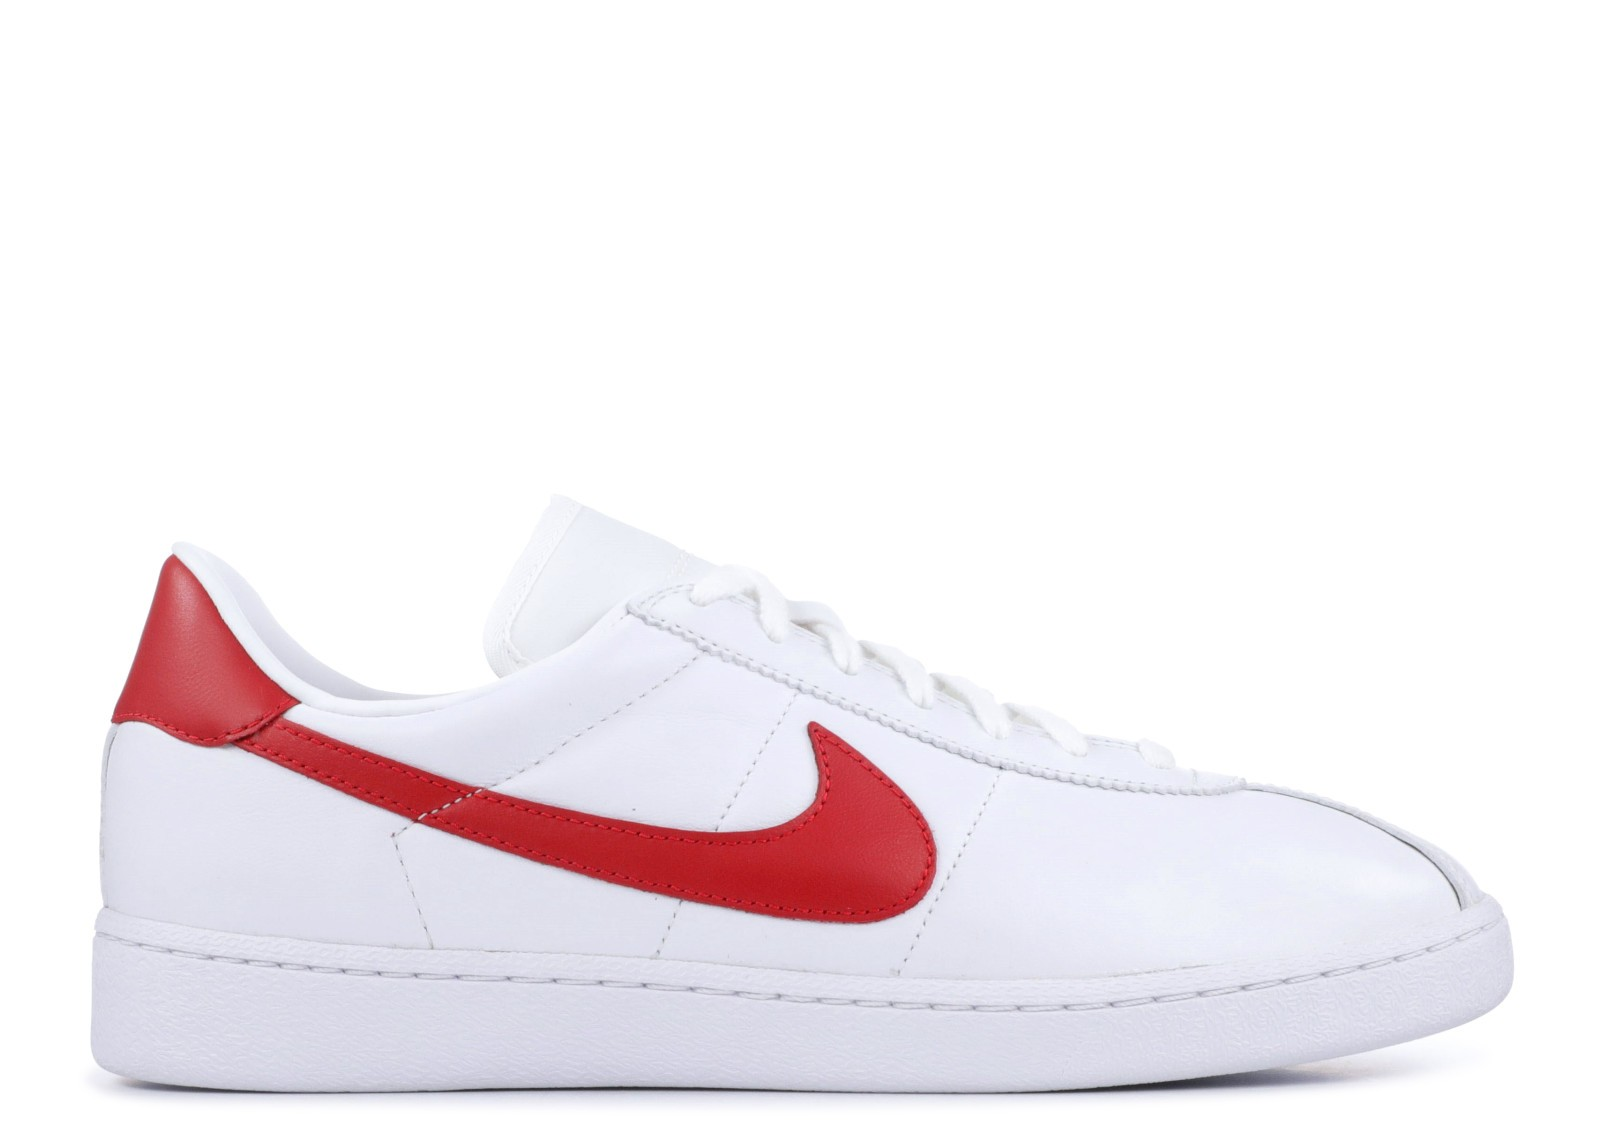 Nike Bruin Leather Wit/Rood 826670-160